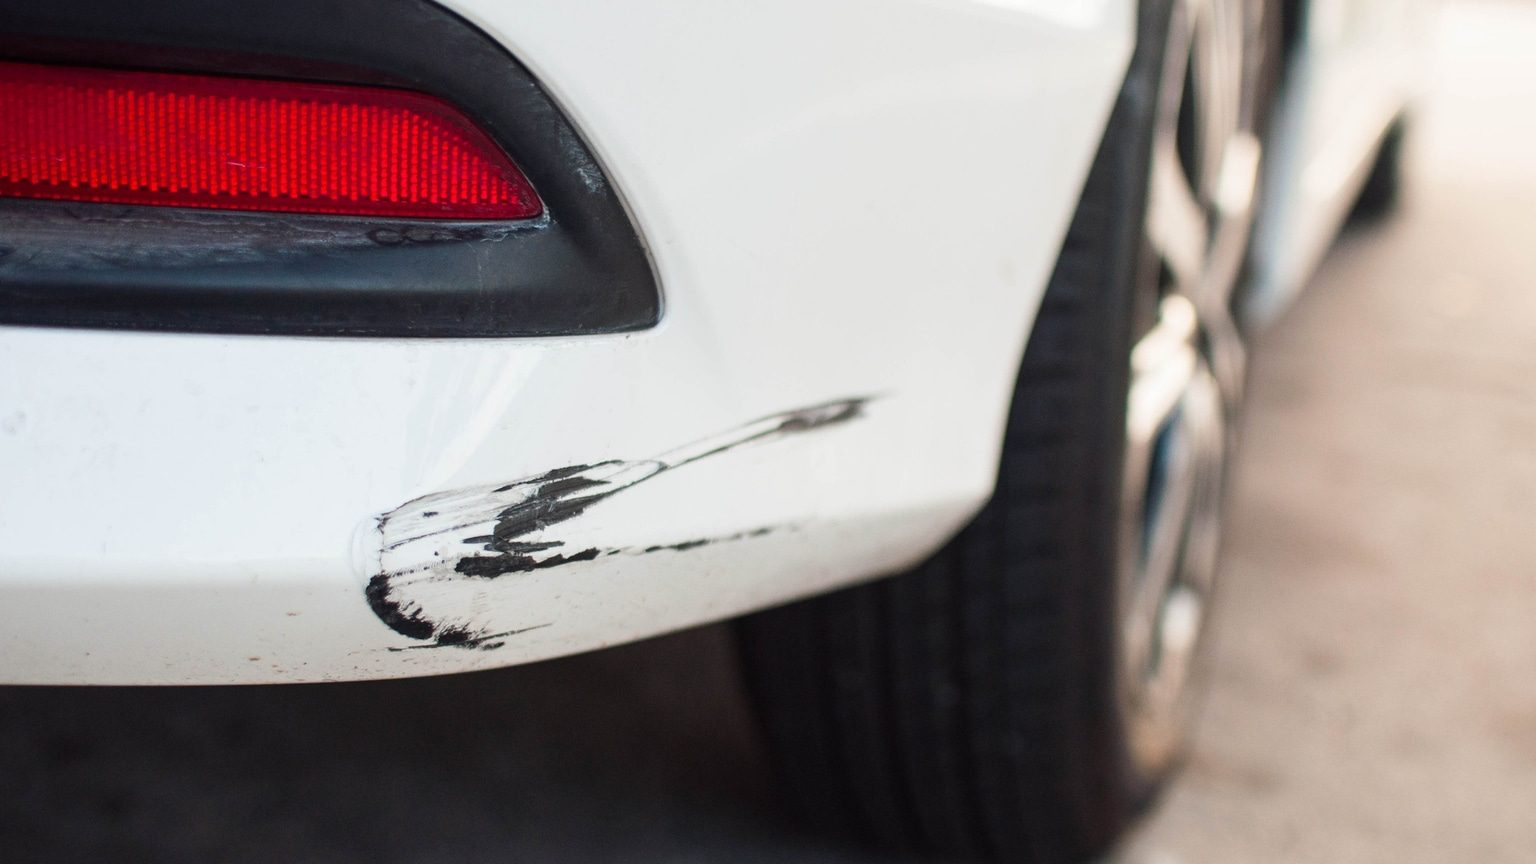 Scratched paint on the bumper of a white car